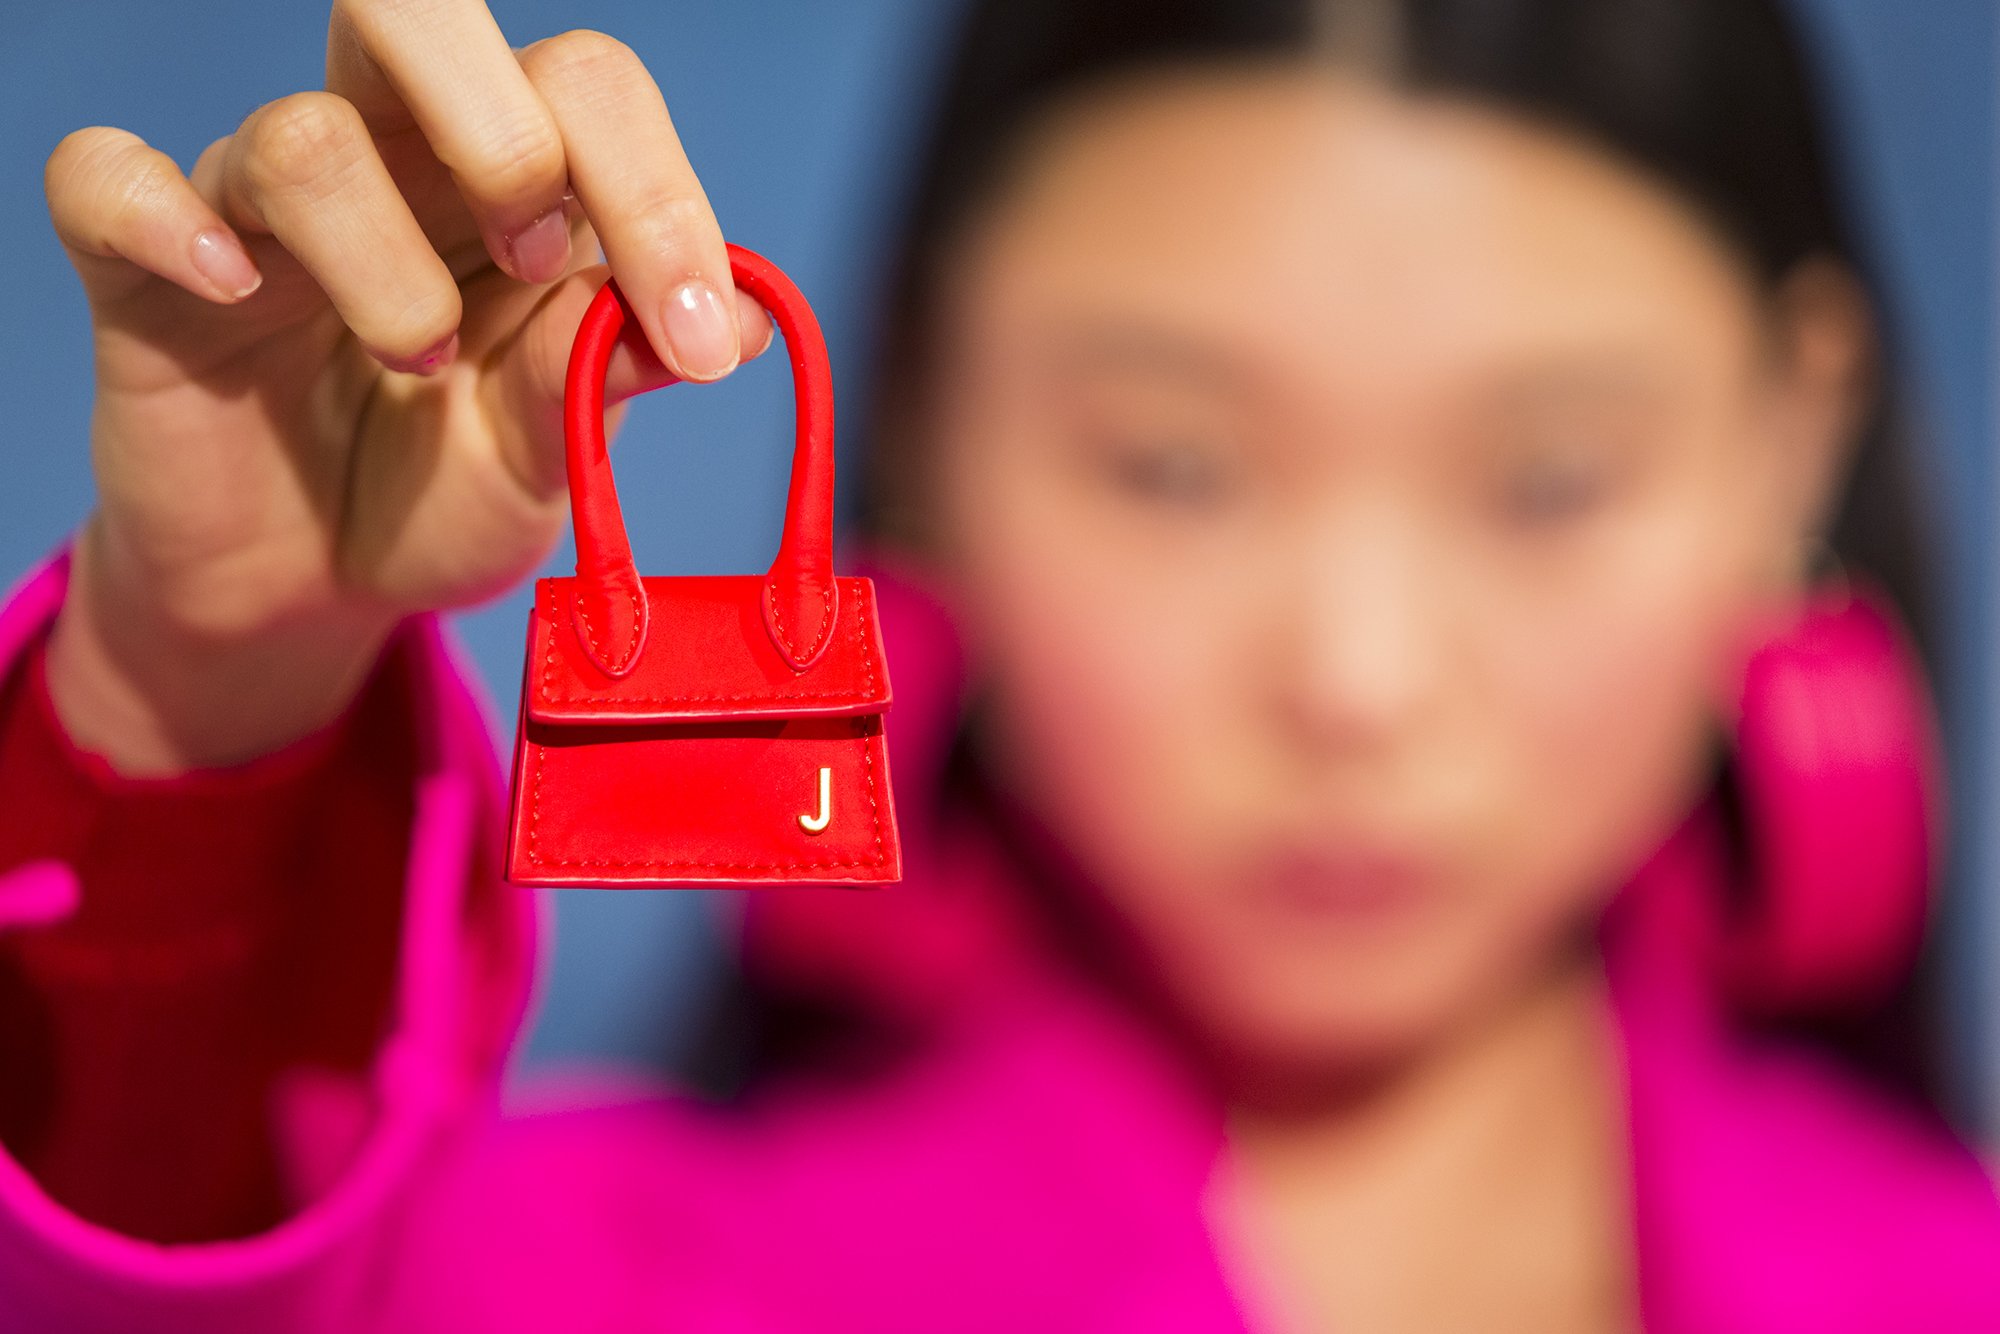 What To Know About The Tiny Handbag Jacquemus Created Time